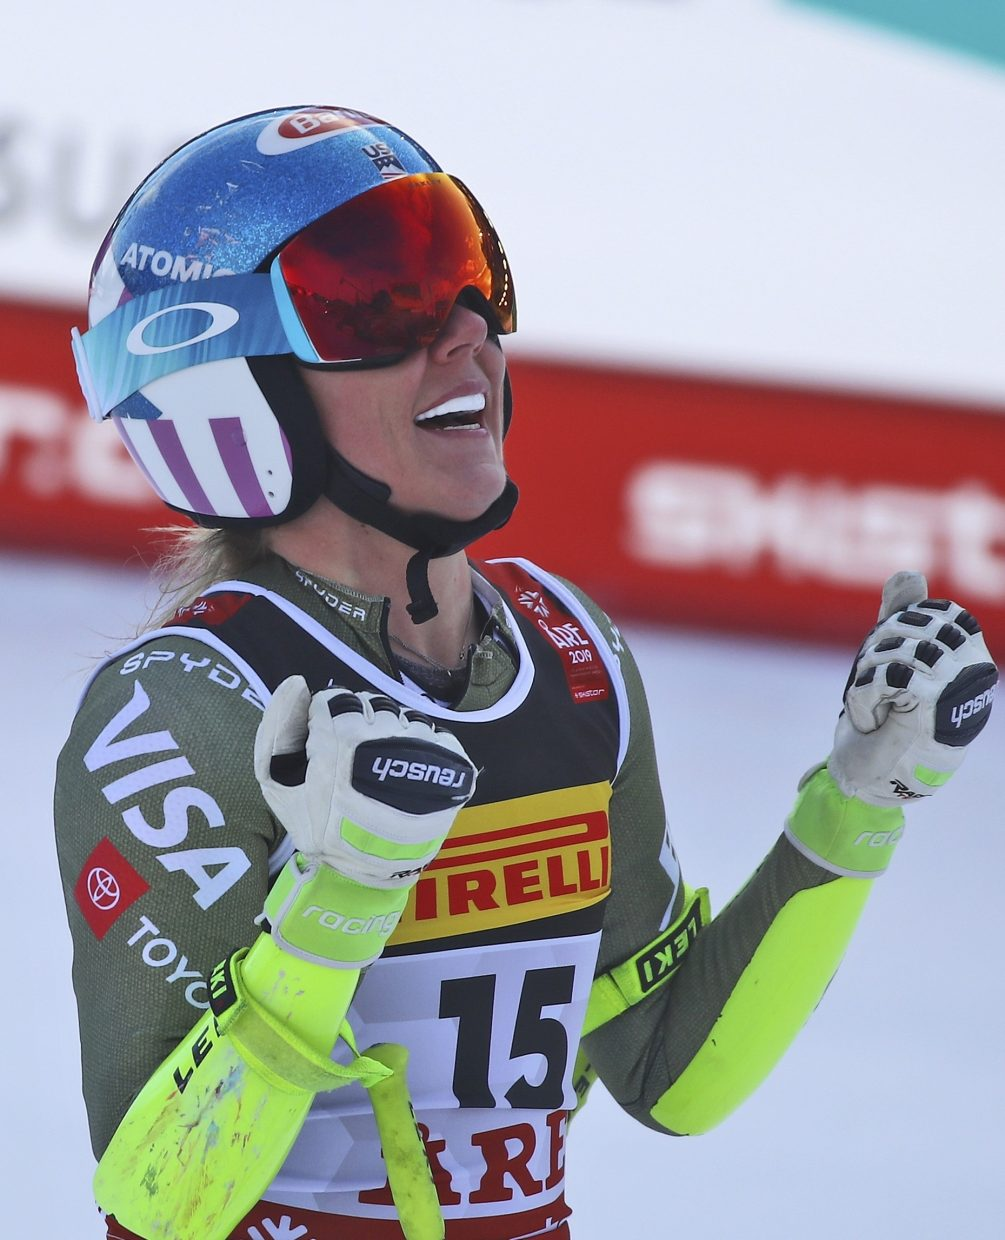 Mikaela Shiffrin celebrates victory in women's super-G at the FIS Alpine World Ski Championships in Are, Sweden. It's Shiffrin's fourth gold medal at Worlds, but her first in speed.